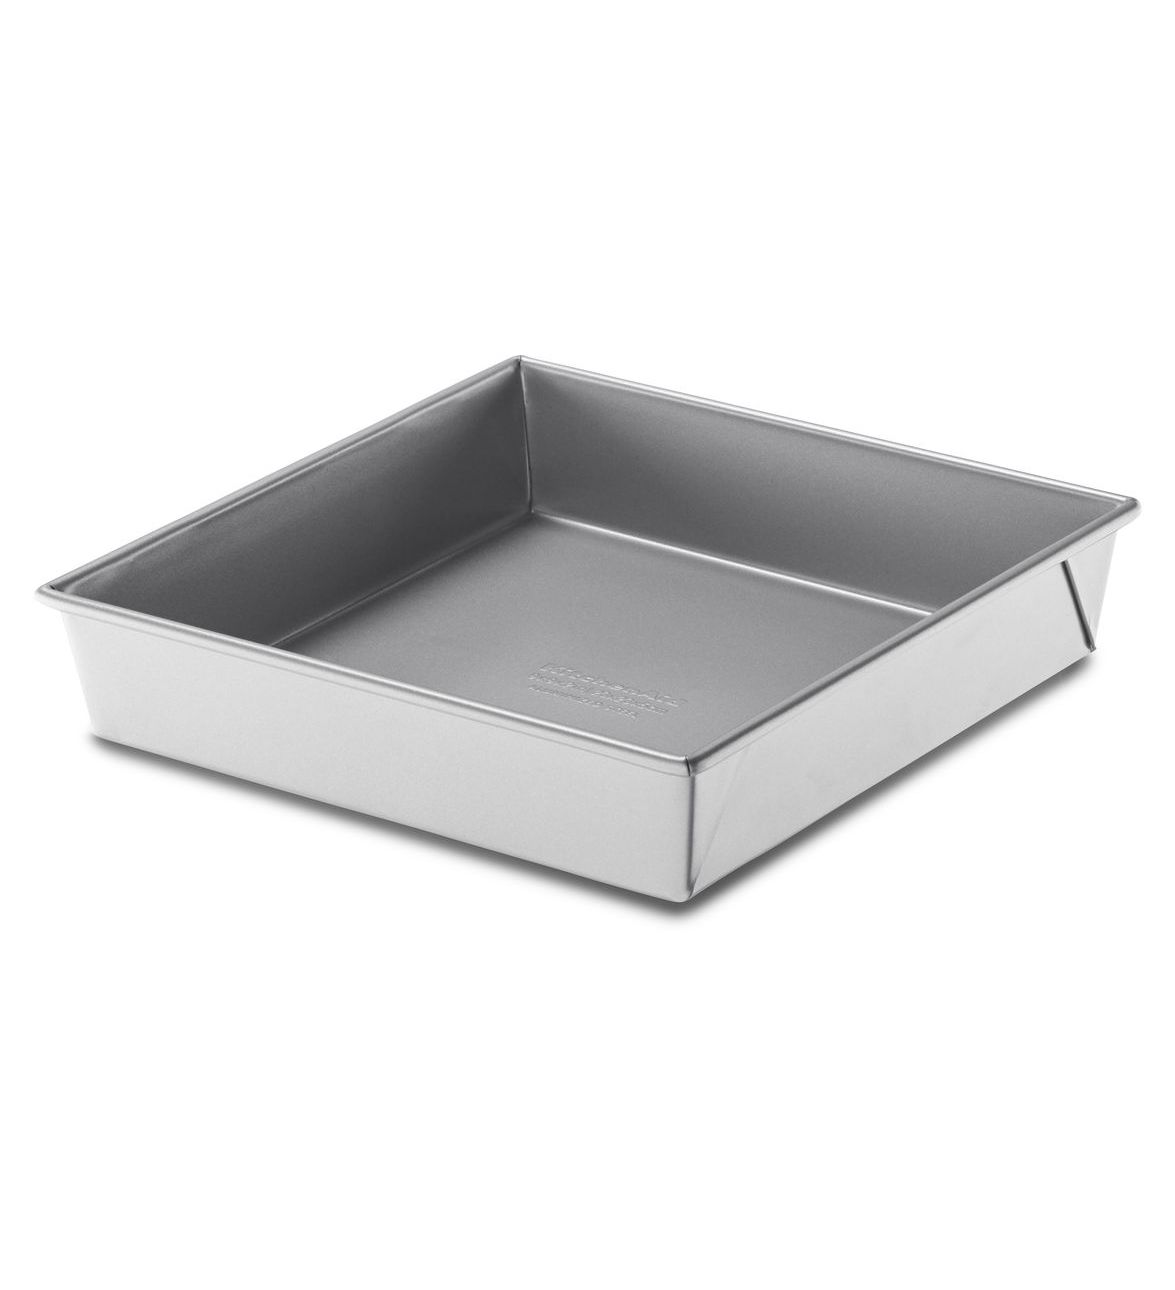 "KitchenAid® Nonstick 9""x9"" Square Pan"